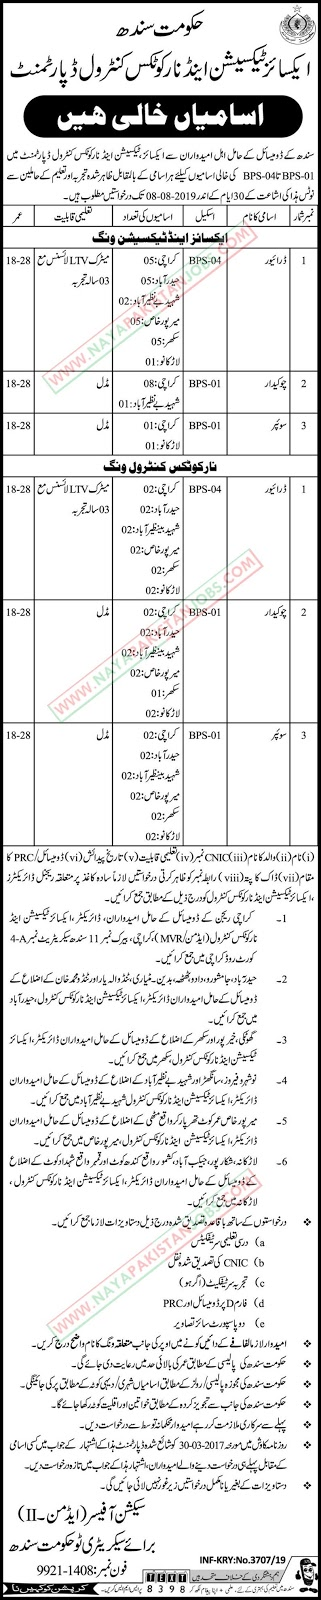 Excise Taxation Jobs, Excise Taxation And Narcotics Control Department Jobs 2019 July